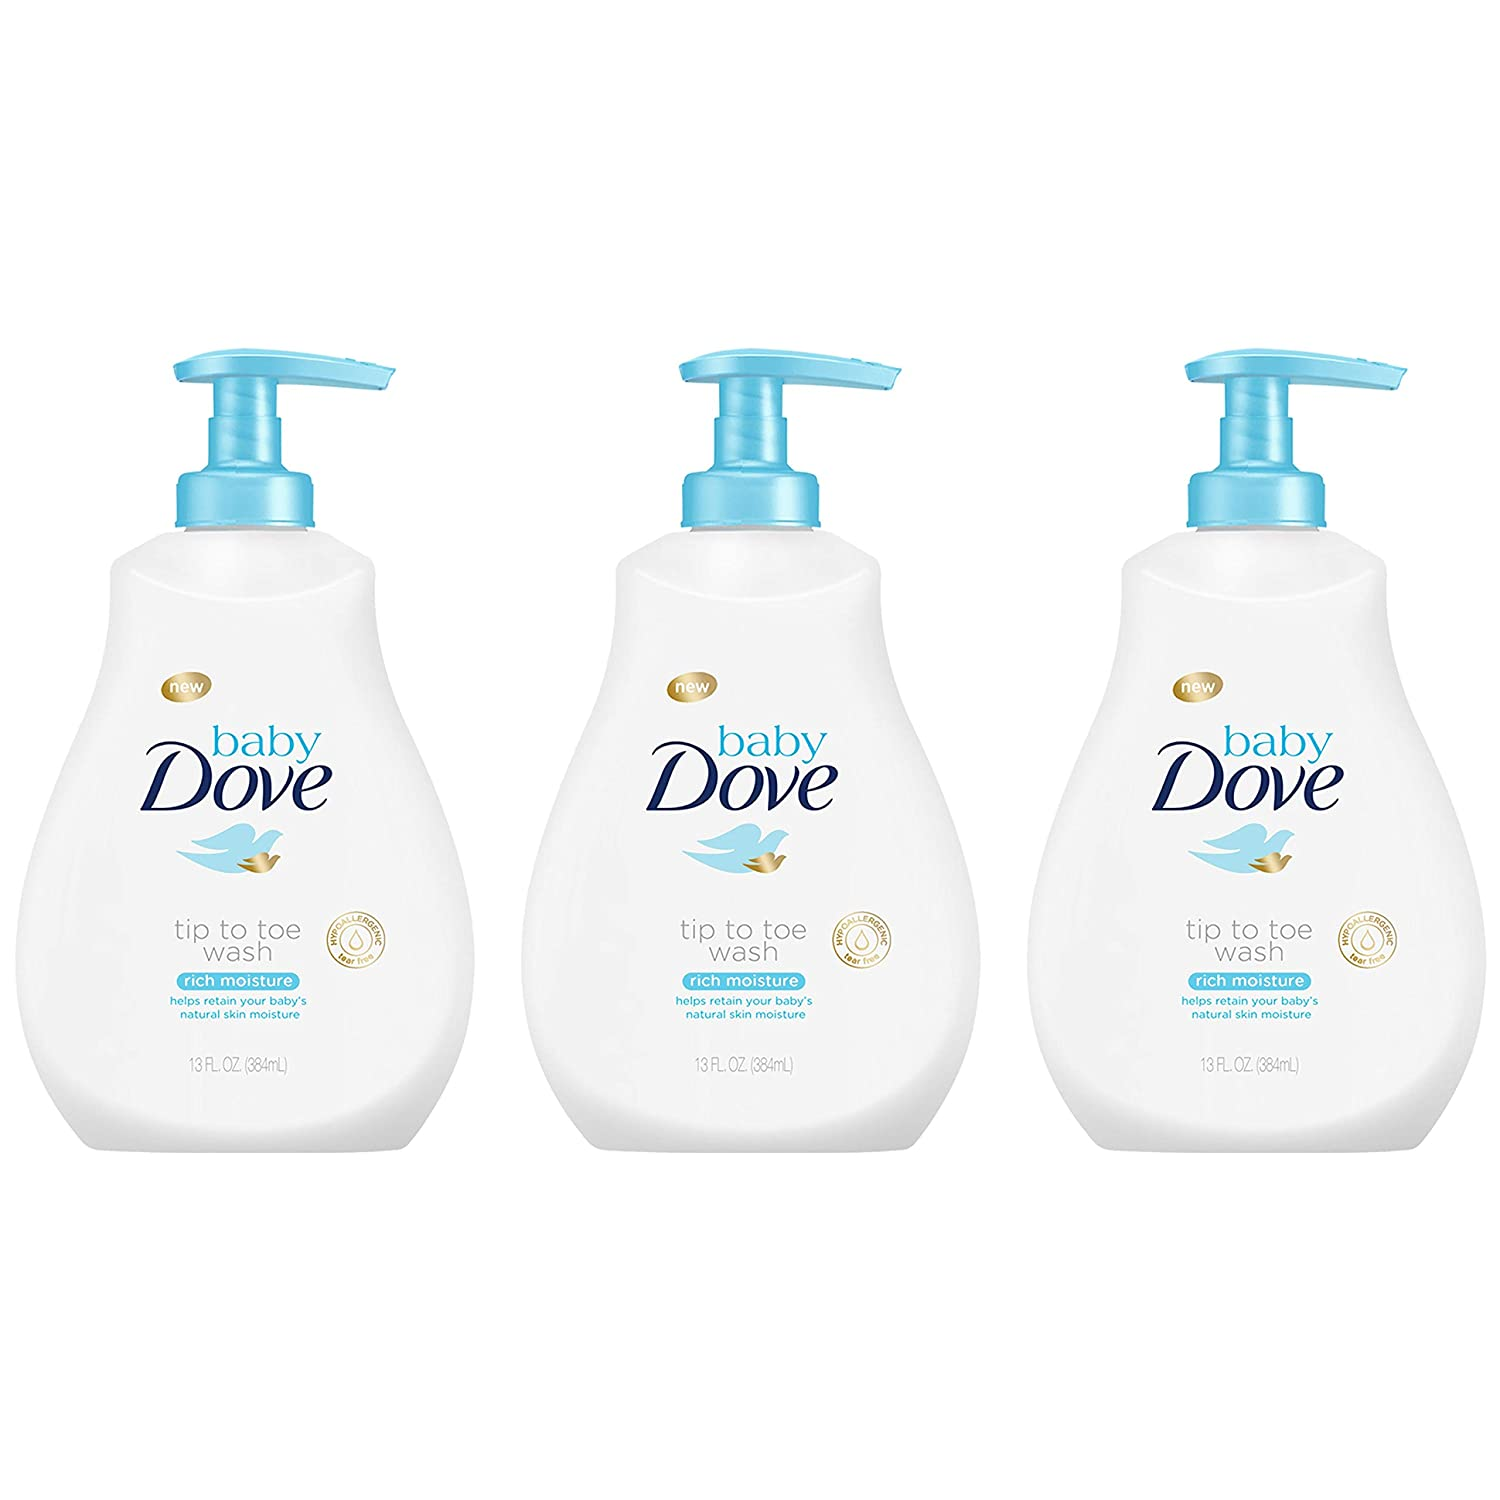 Baby Dove Rich Moisture Tip to Toe Baby Wash and Shampoo 13 Fl Oz (Pack of 3)